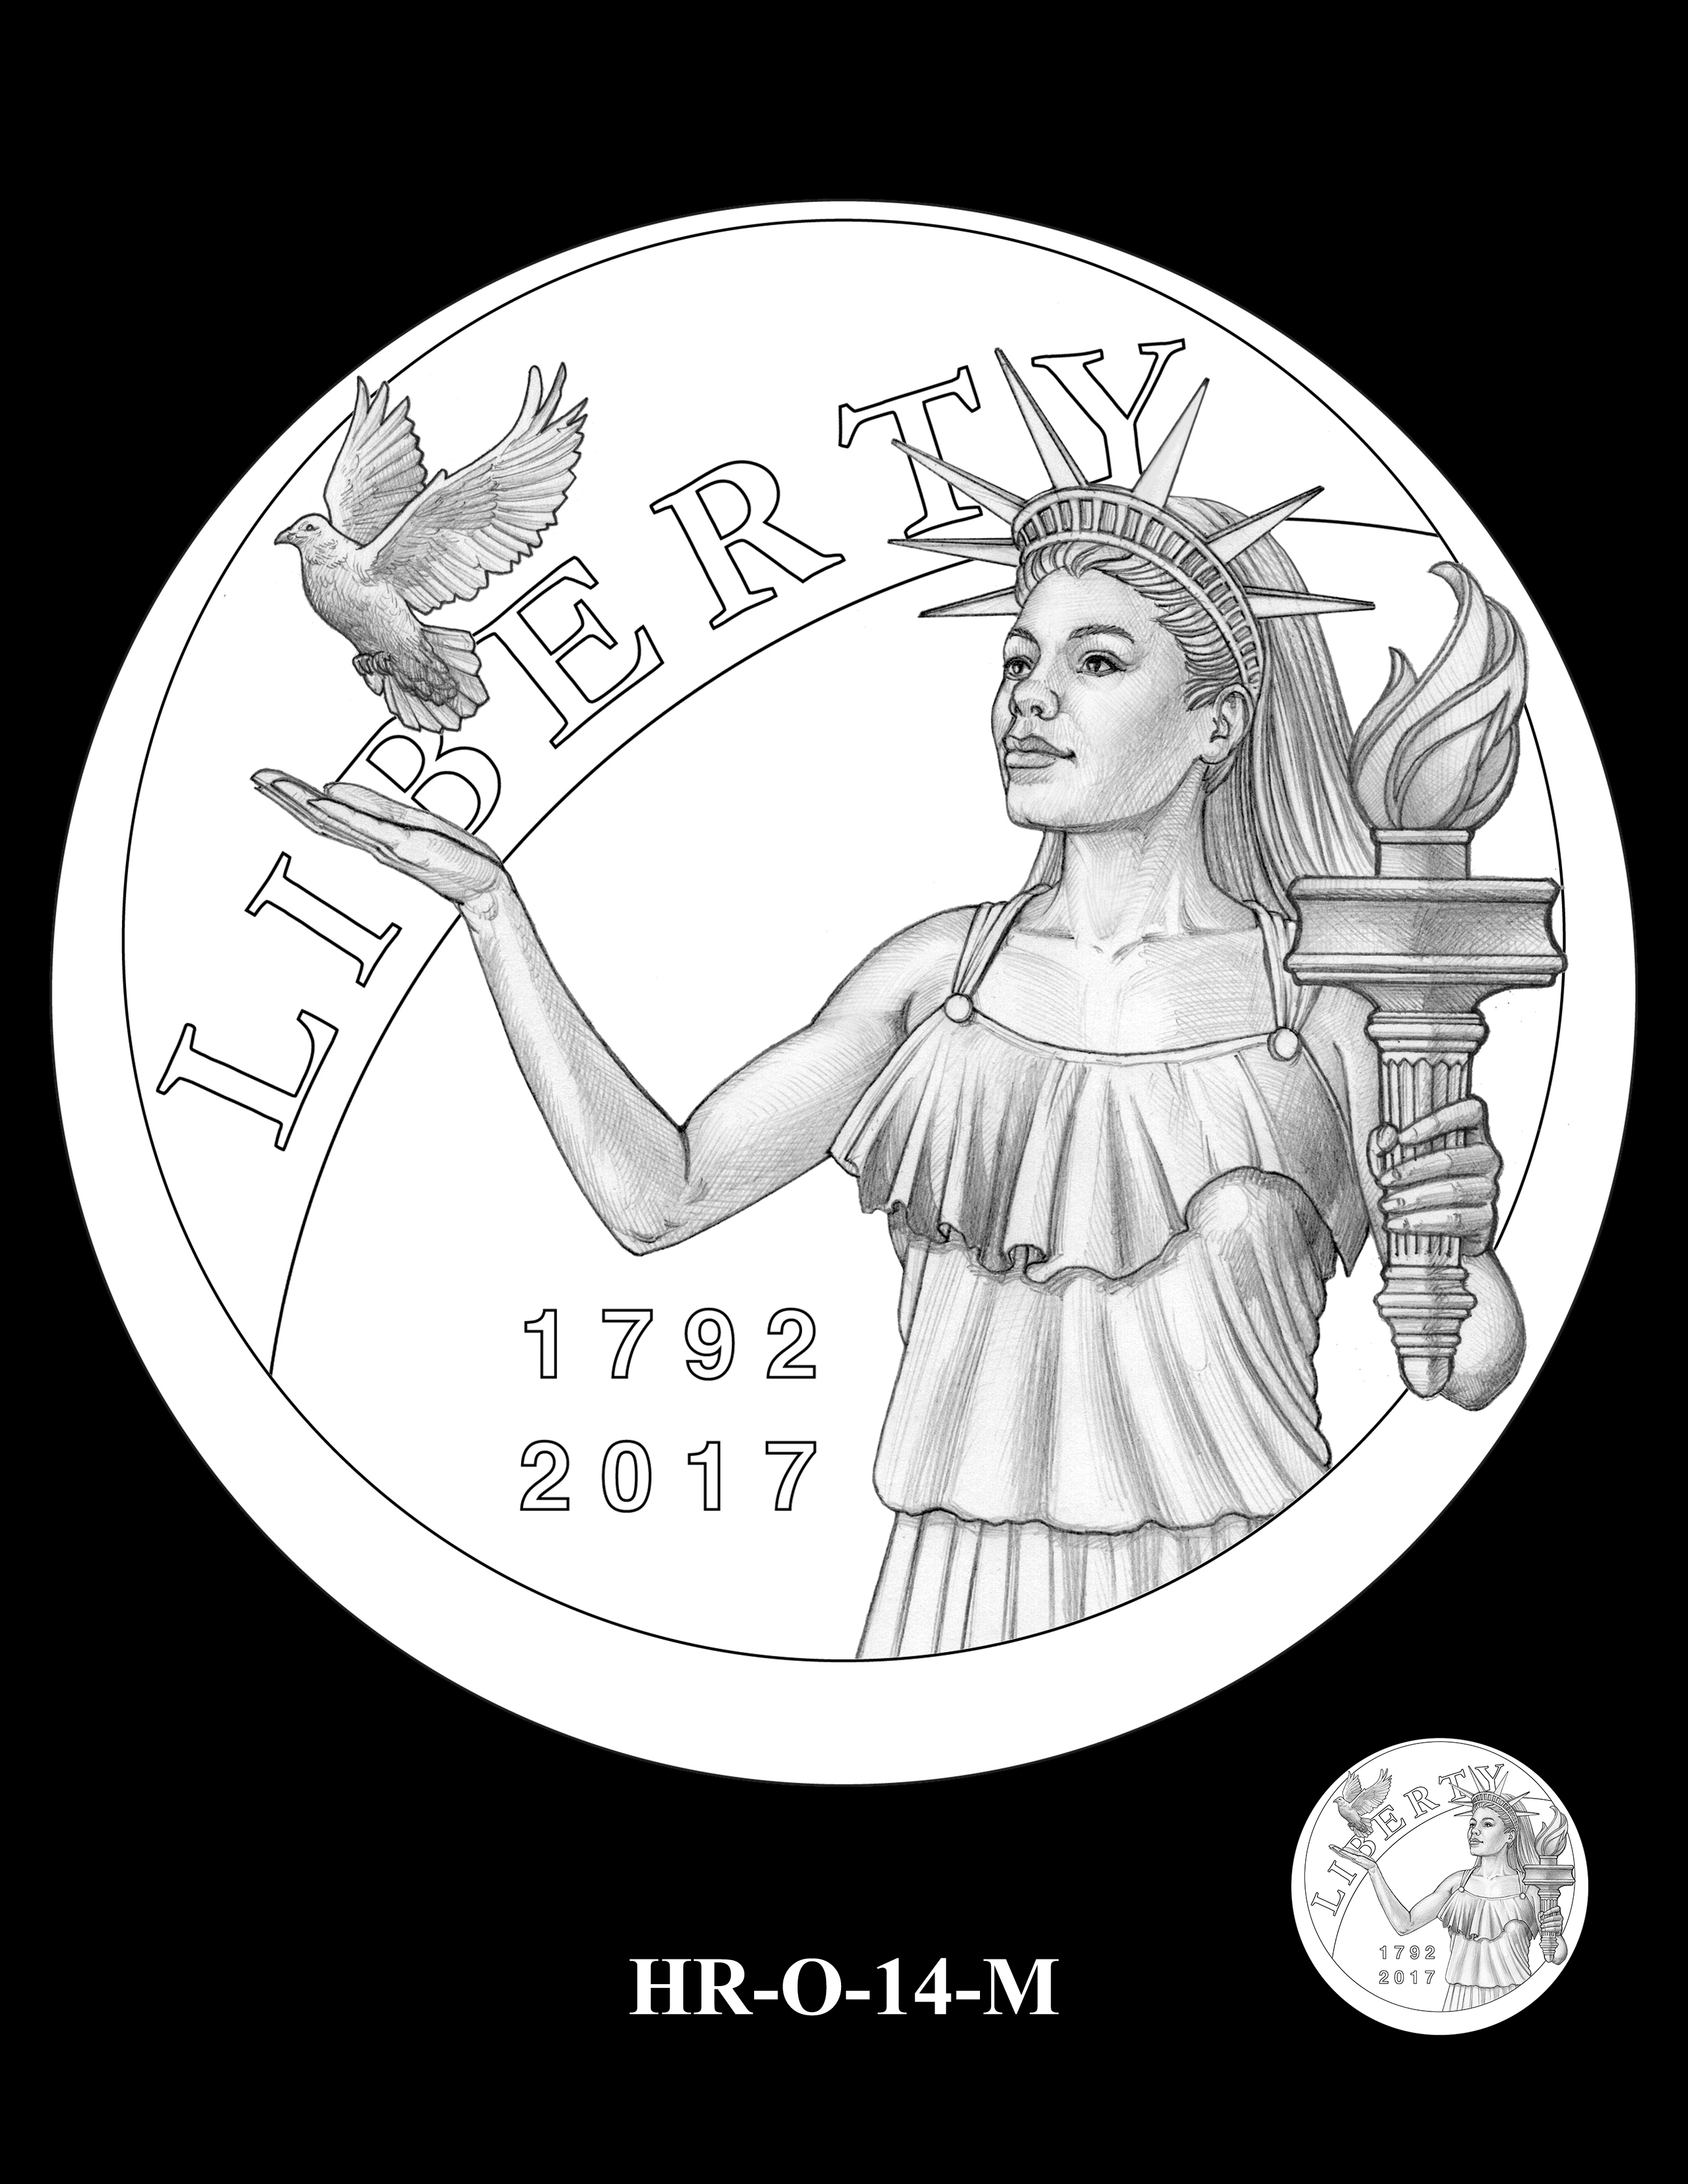 HR-O-14-M - 2017 American Liberty High Relief Gold Coin and Silver Medal Program